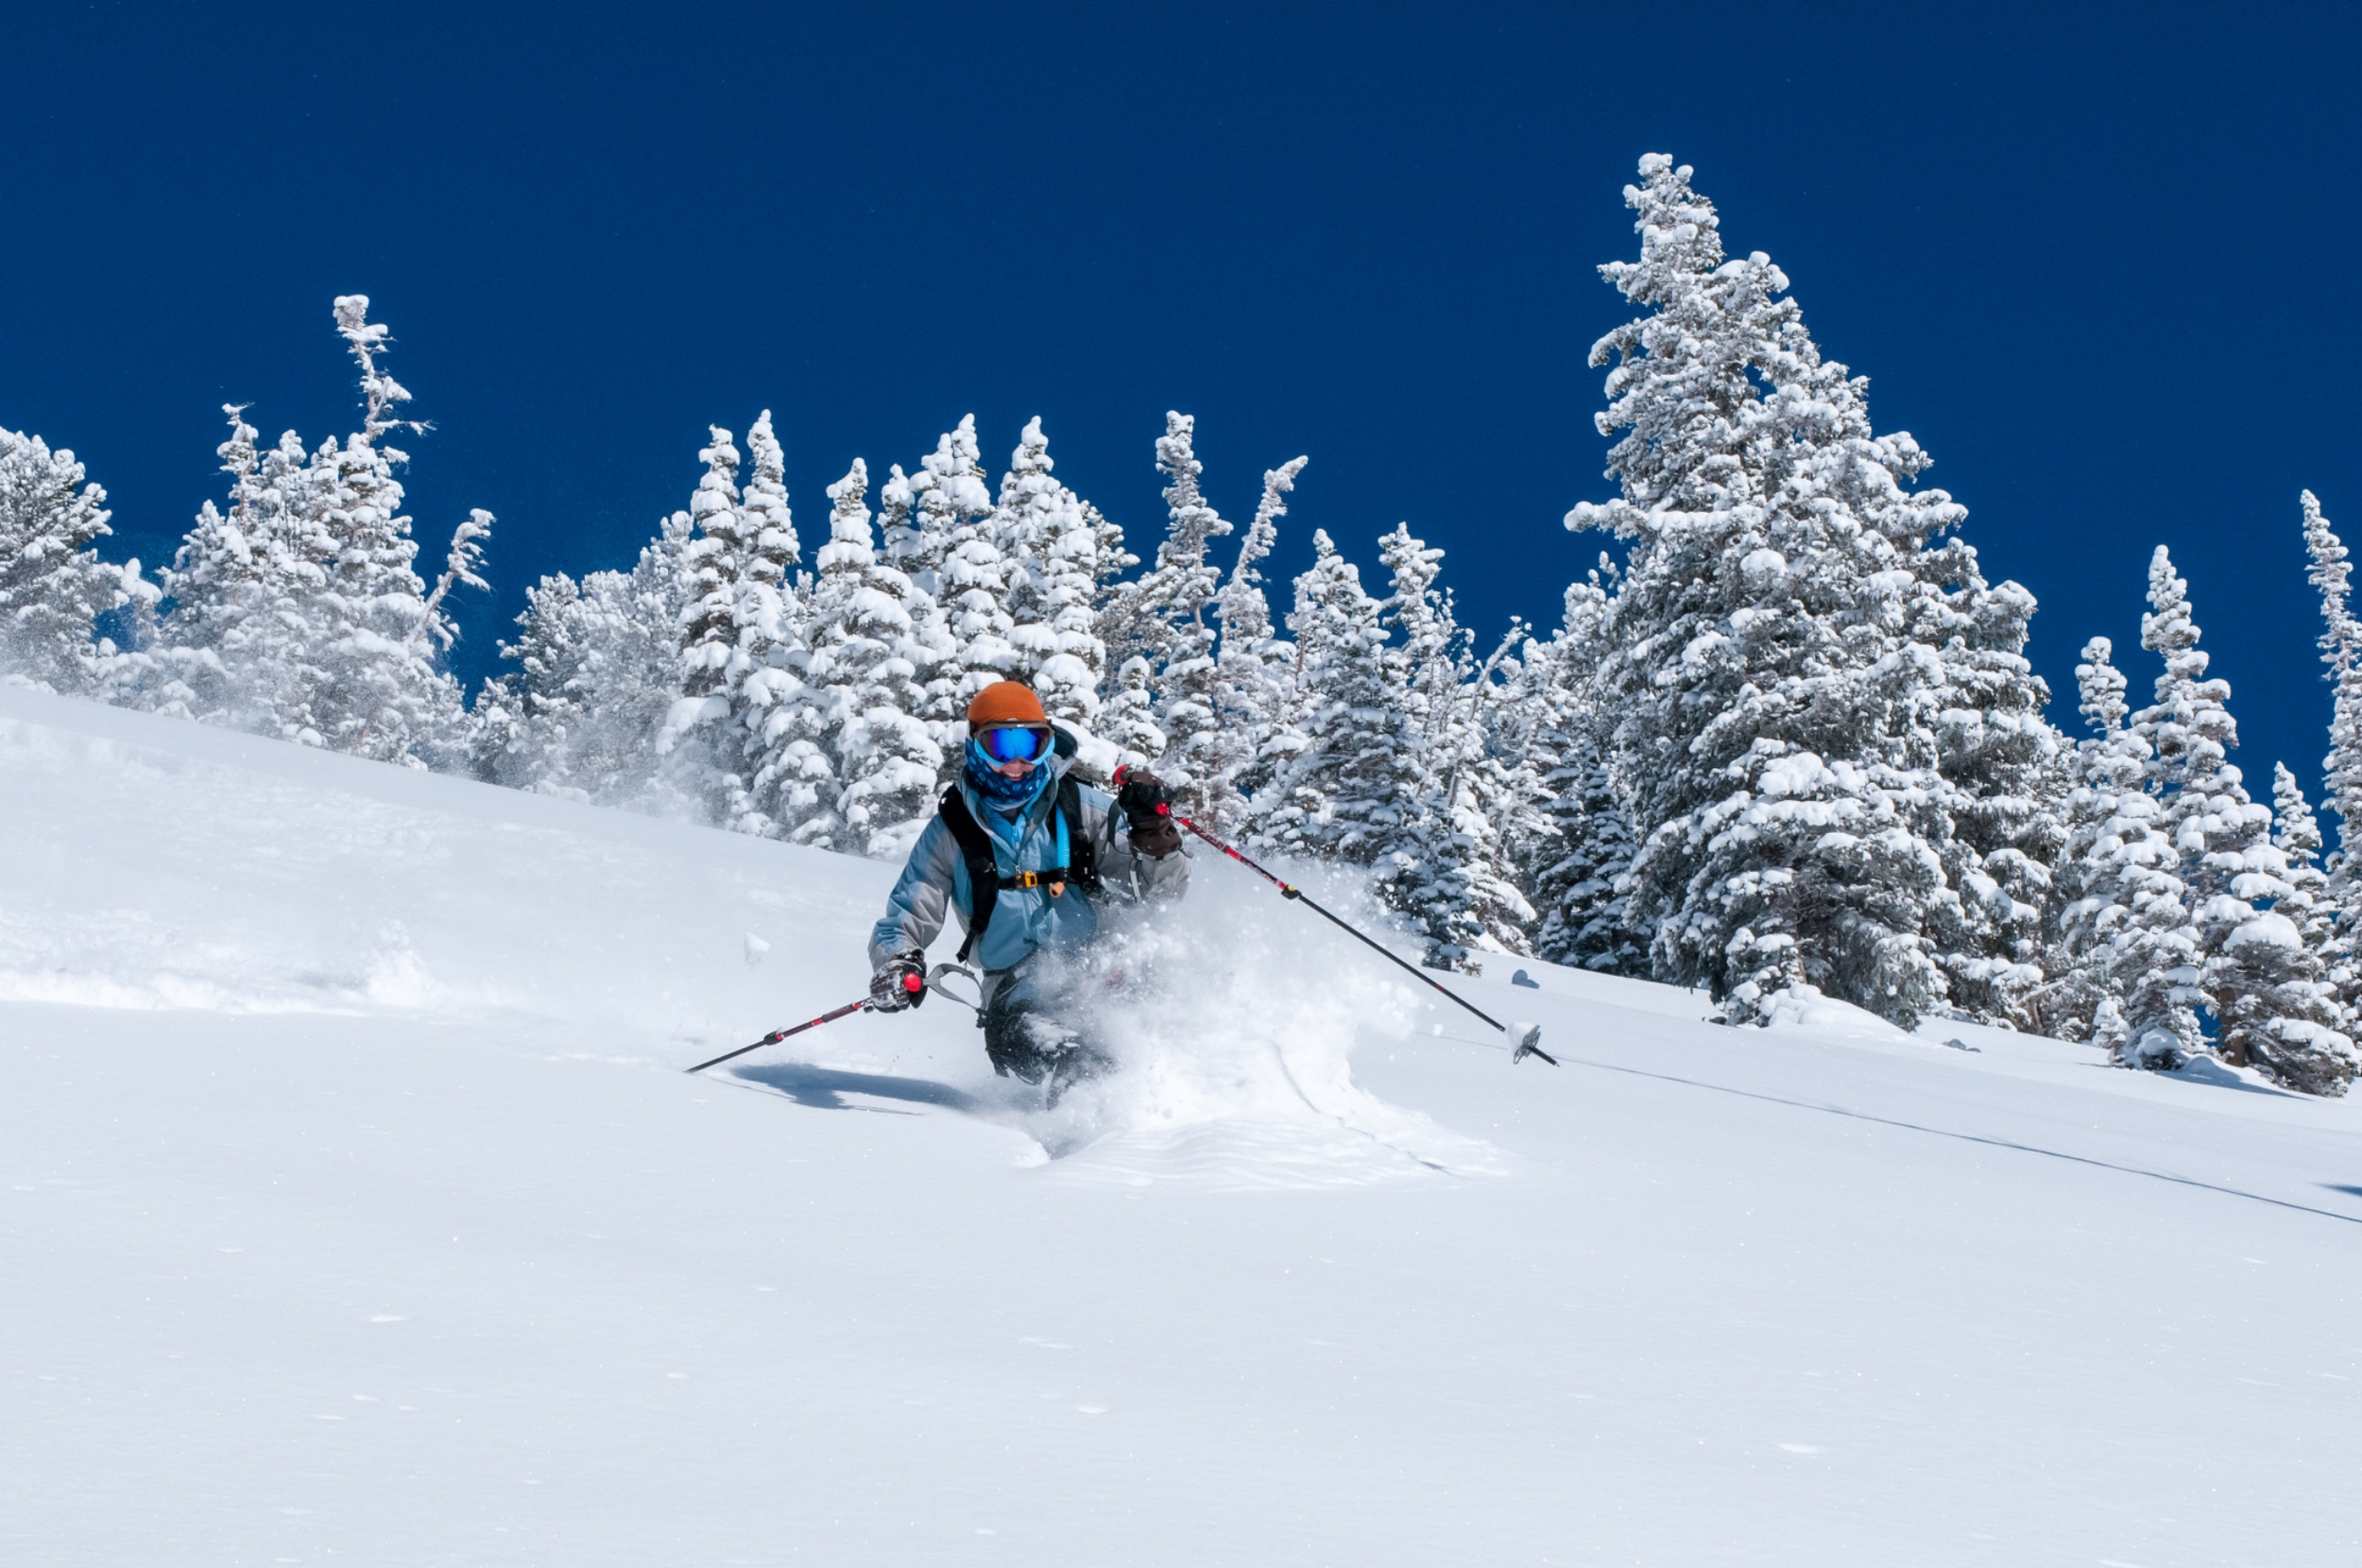 World class skiing during a Canada adventure tour in the winter.